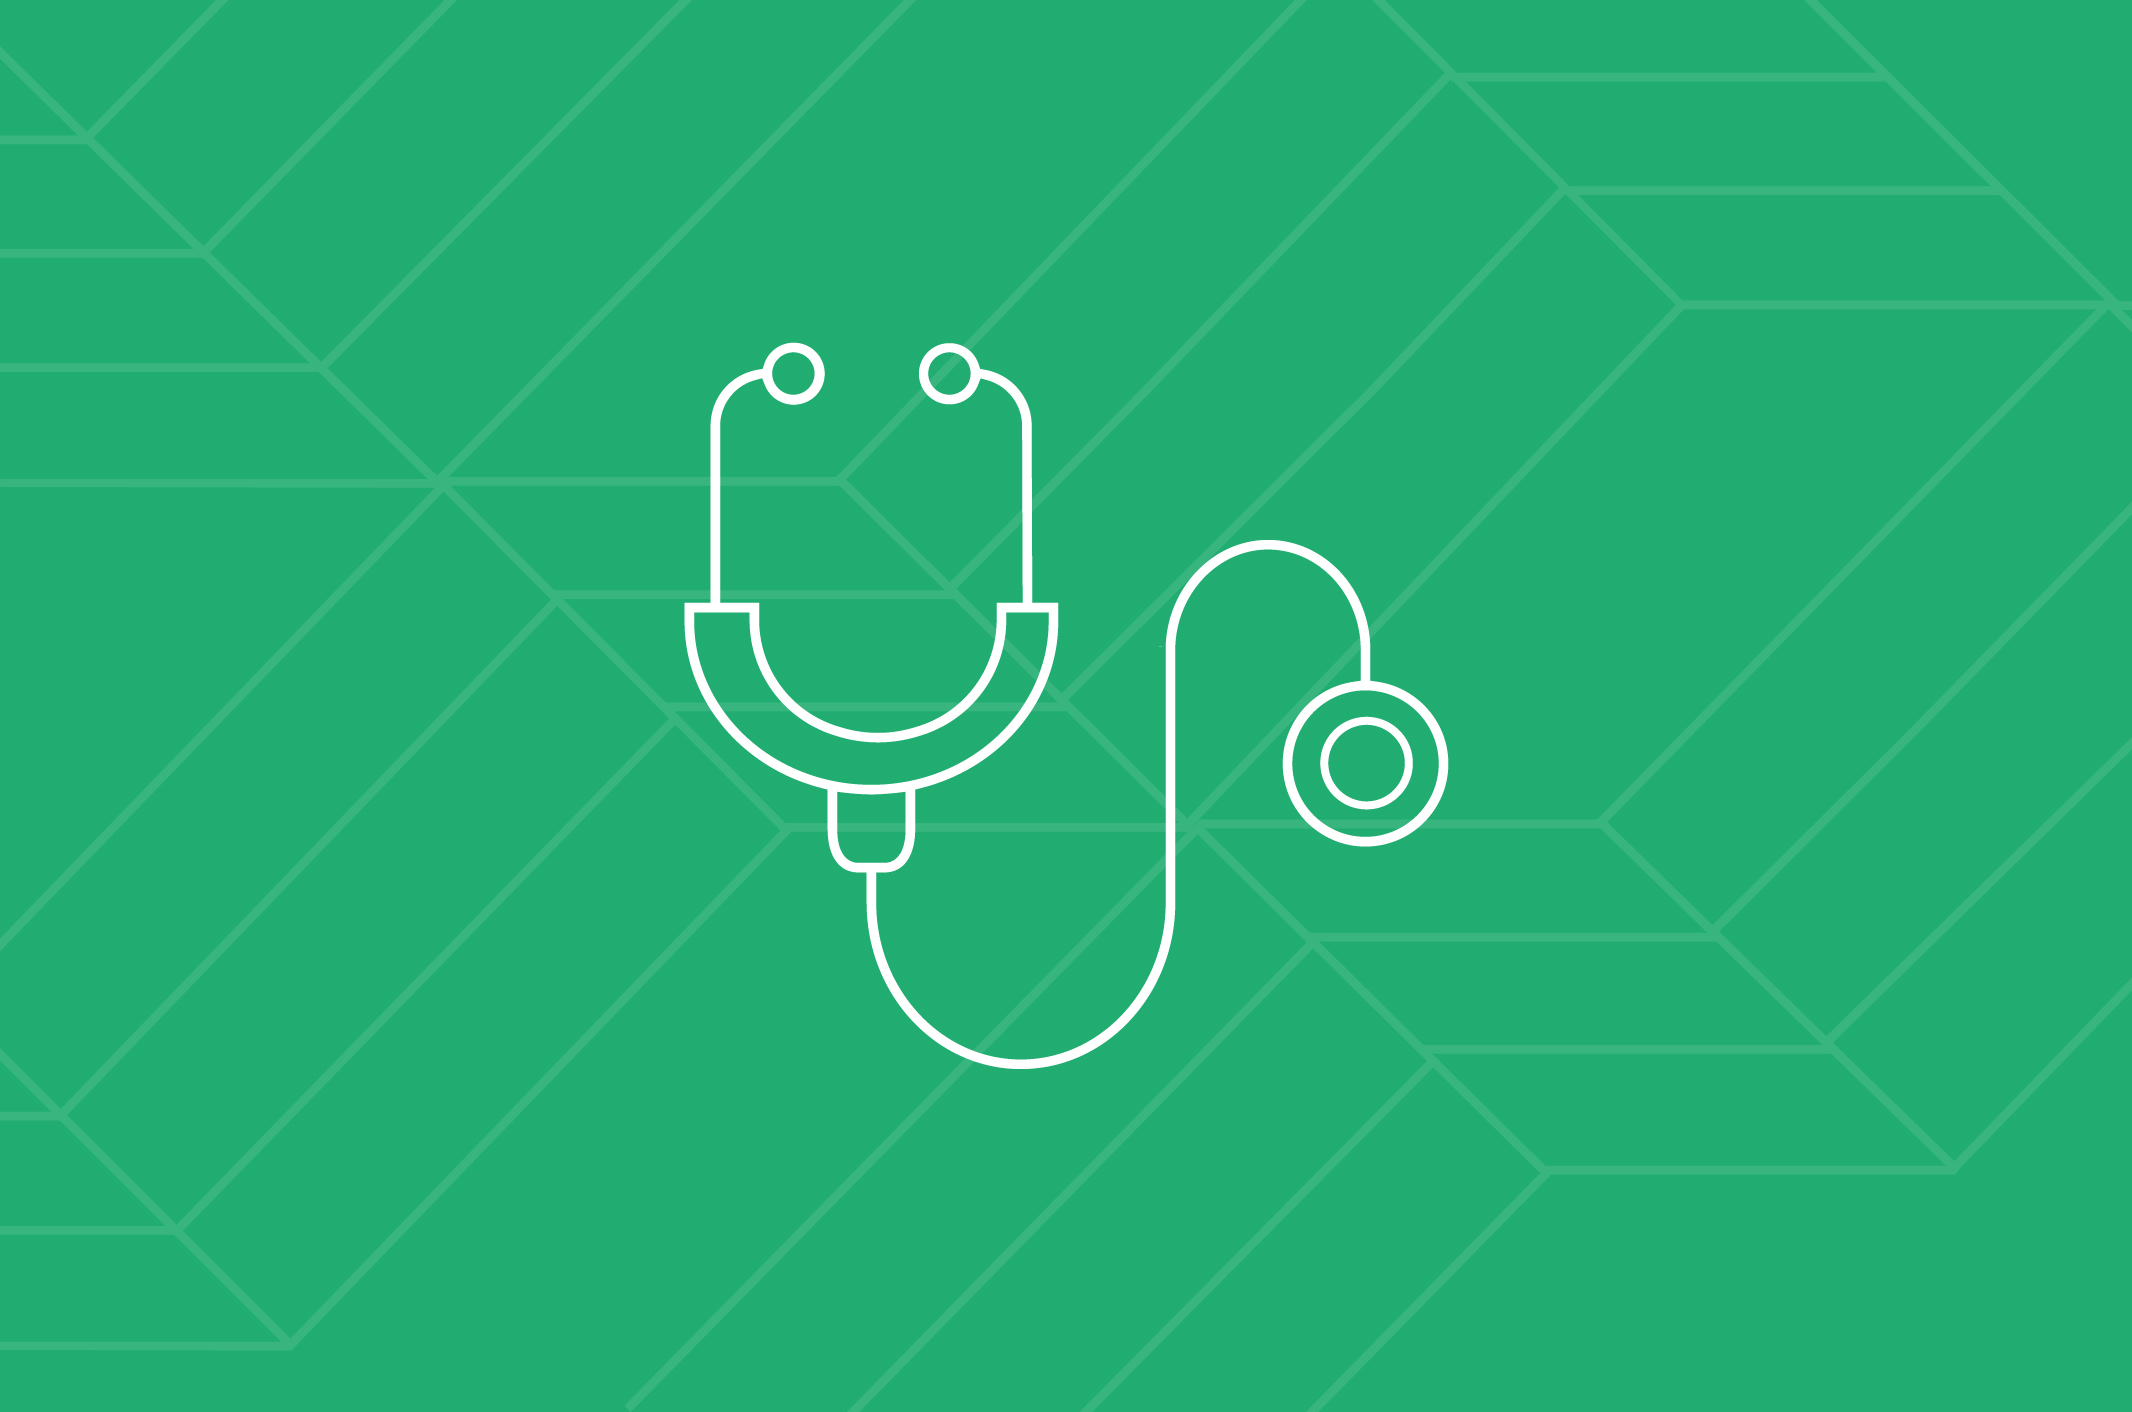 Hospitals & Health Systems - We know providers. We bring decades of big company advisory and talent experience to our provider clients, which include major health systems, academic medical centers and physician groups across the country.